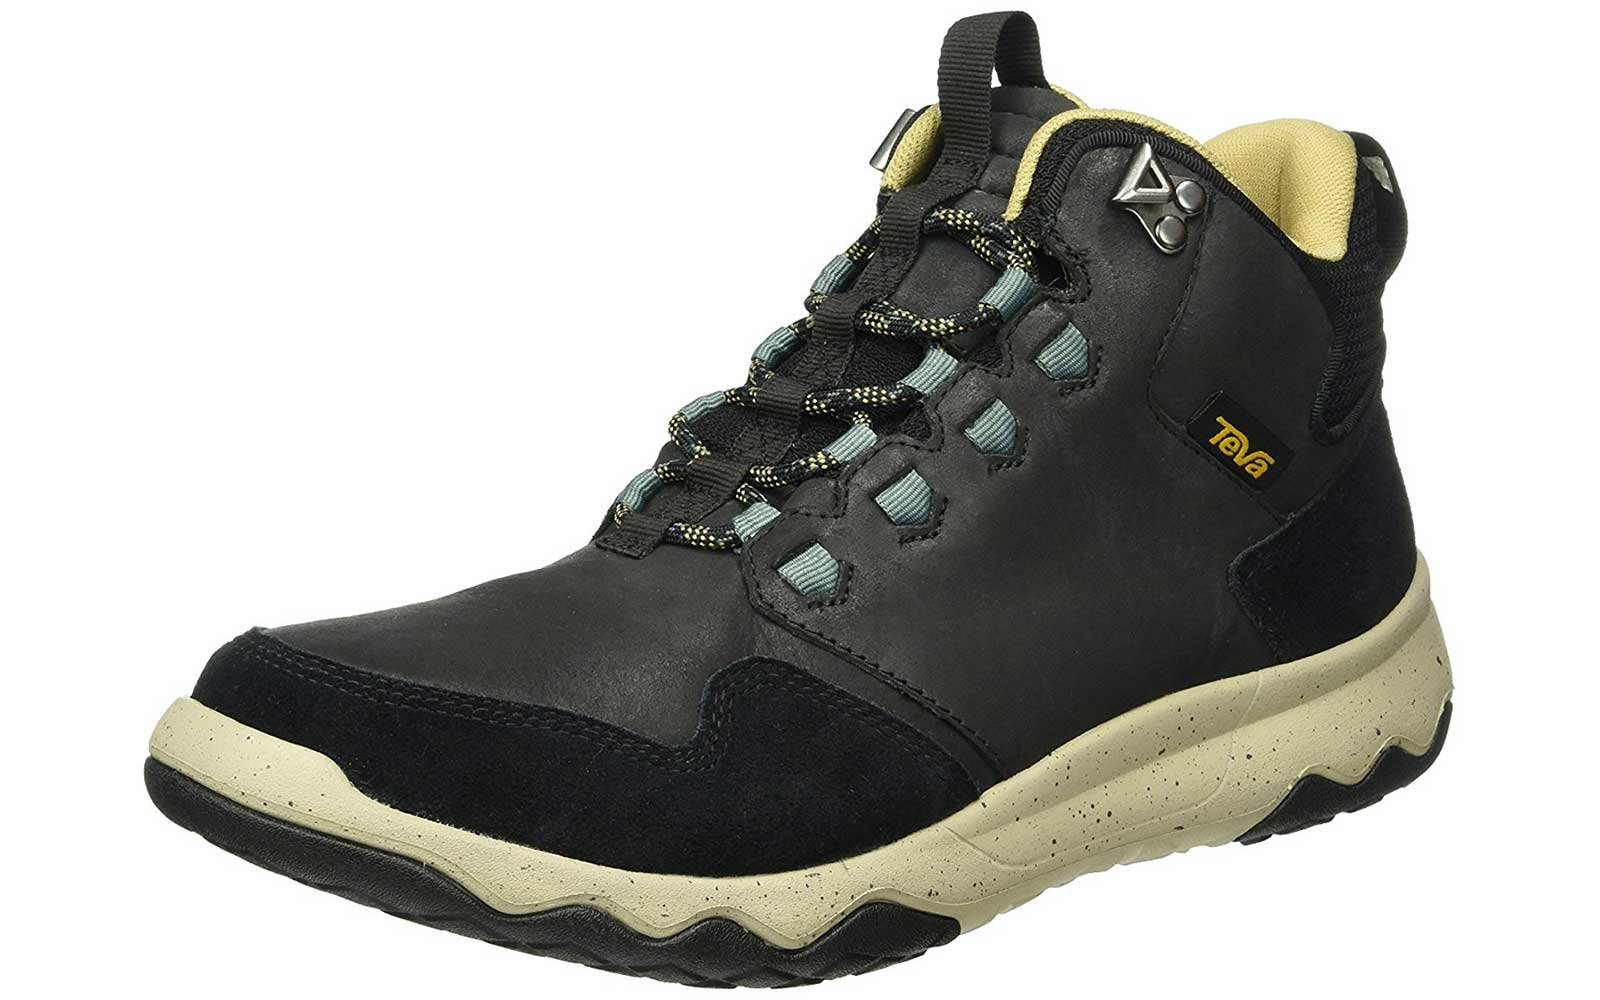 Teva Waterproof Walking Shoes